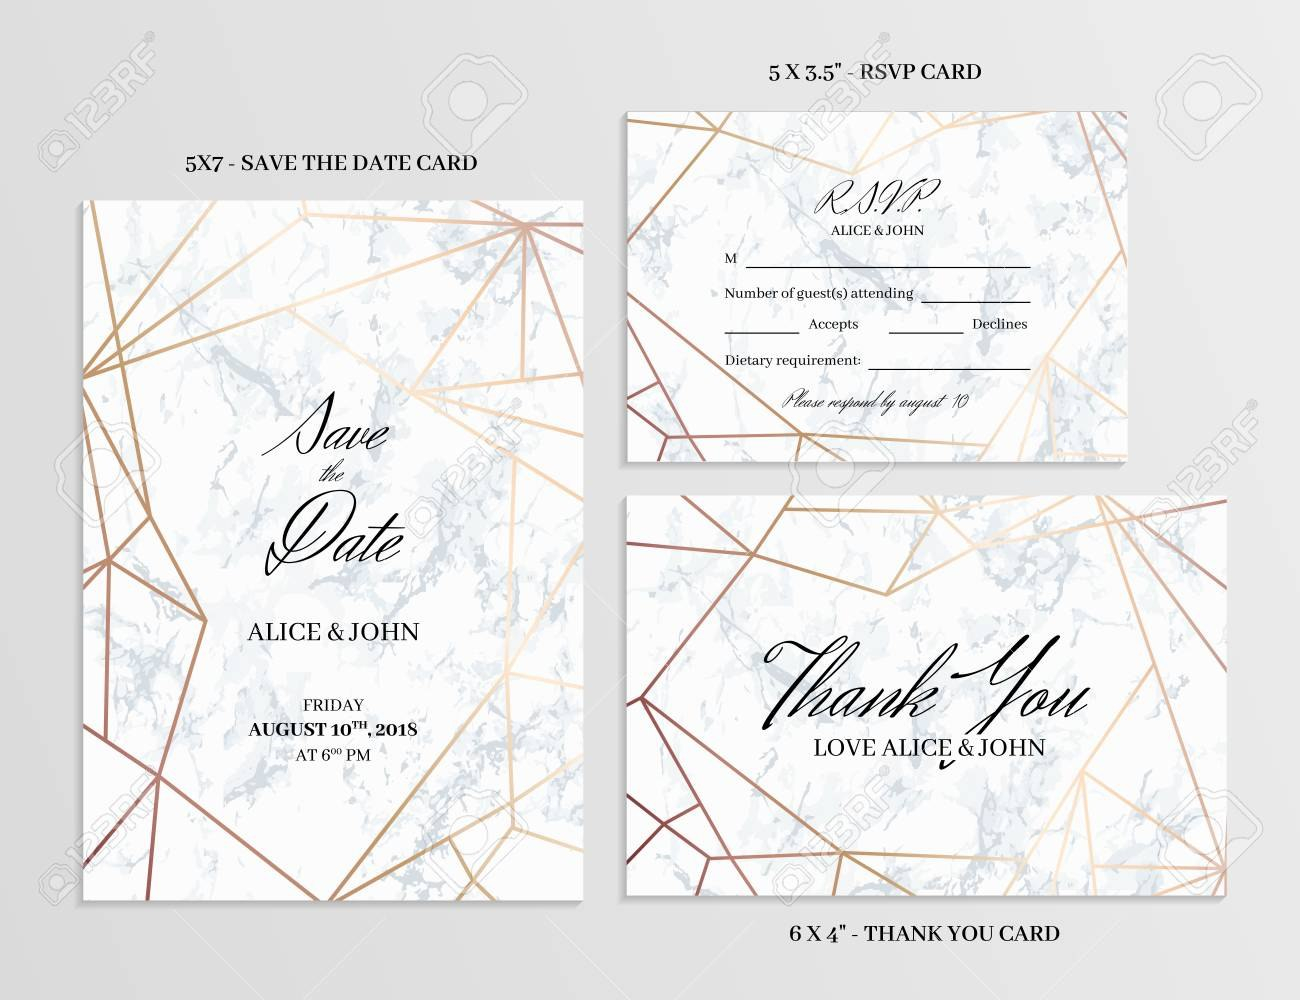 Wedding Set Save The Date Thank You And Rsvp Cards Template Within Template For Rsvp Cards For Wedding